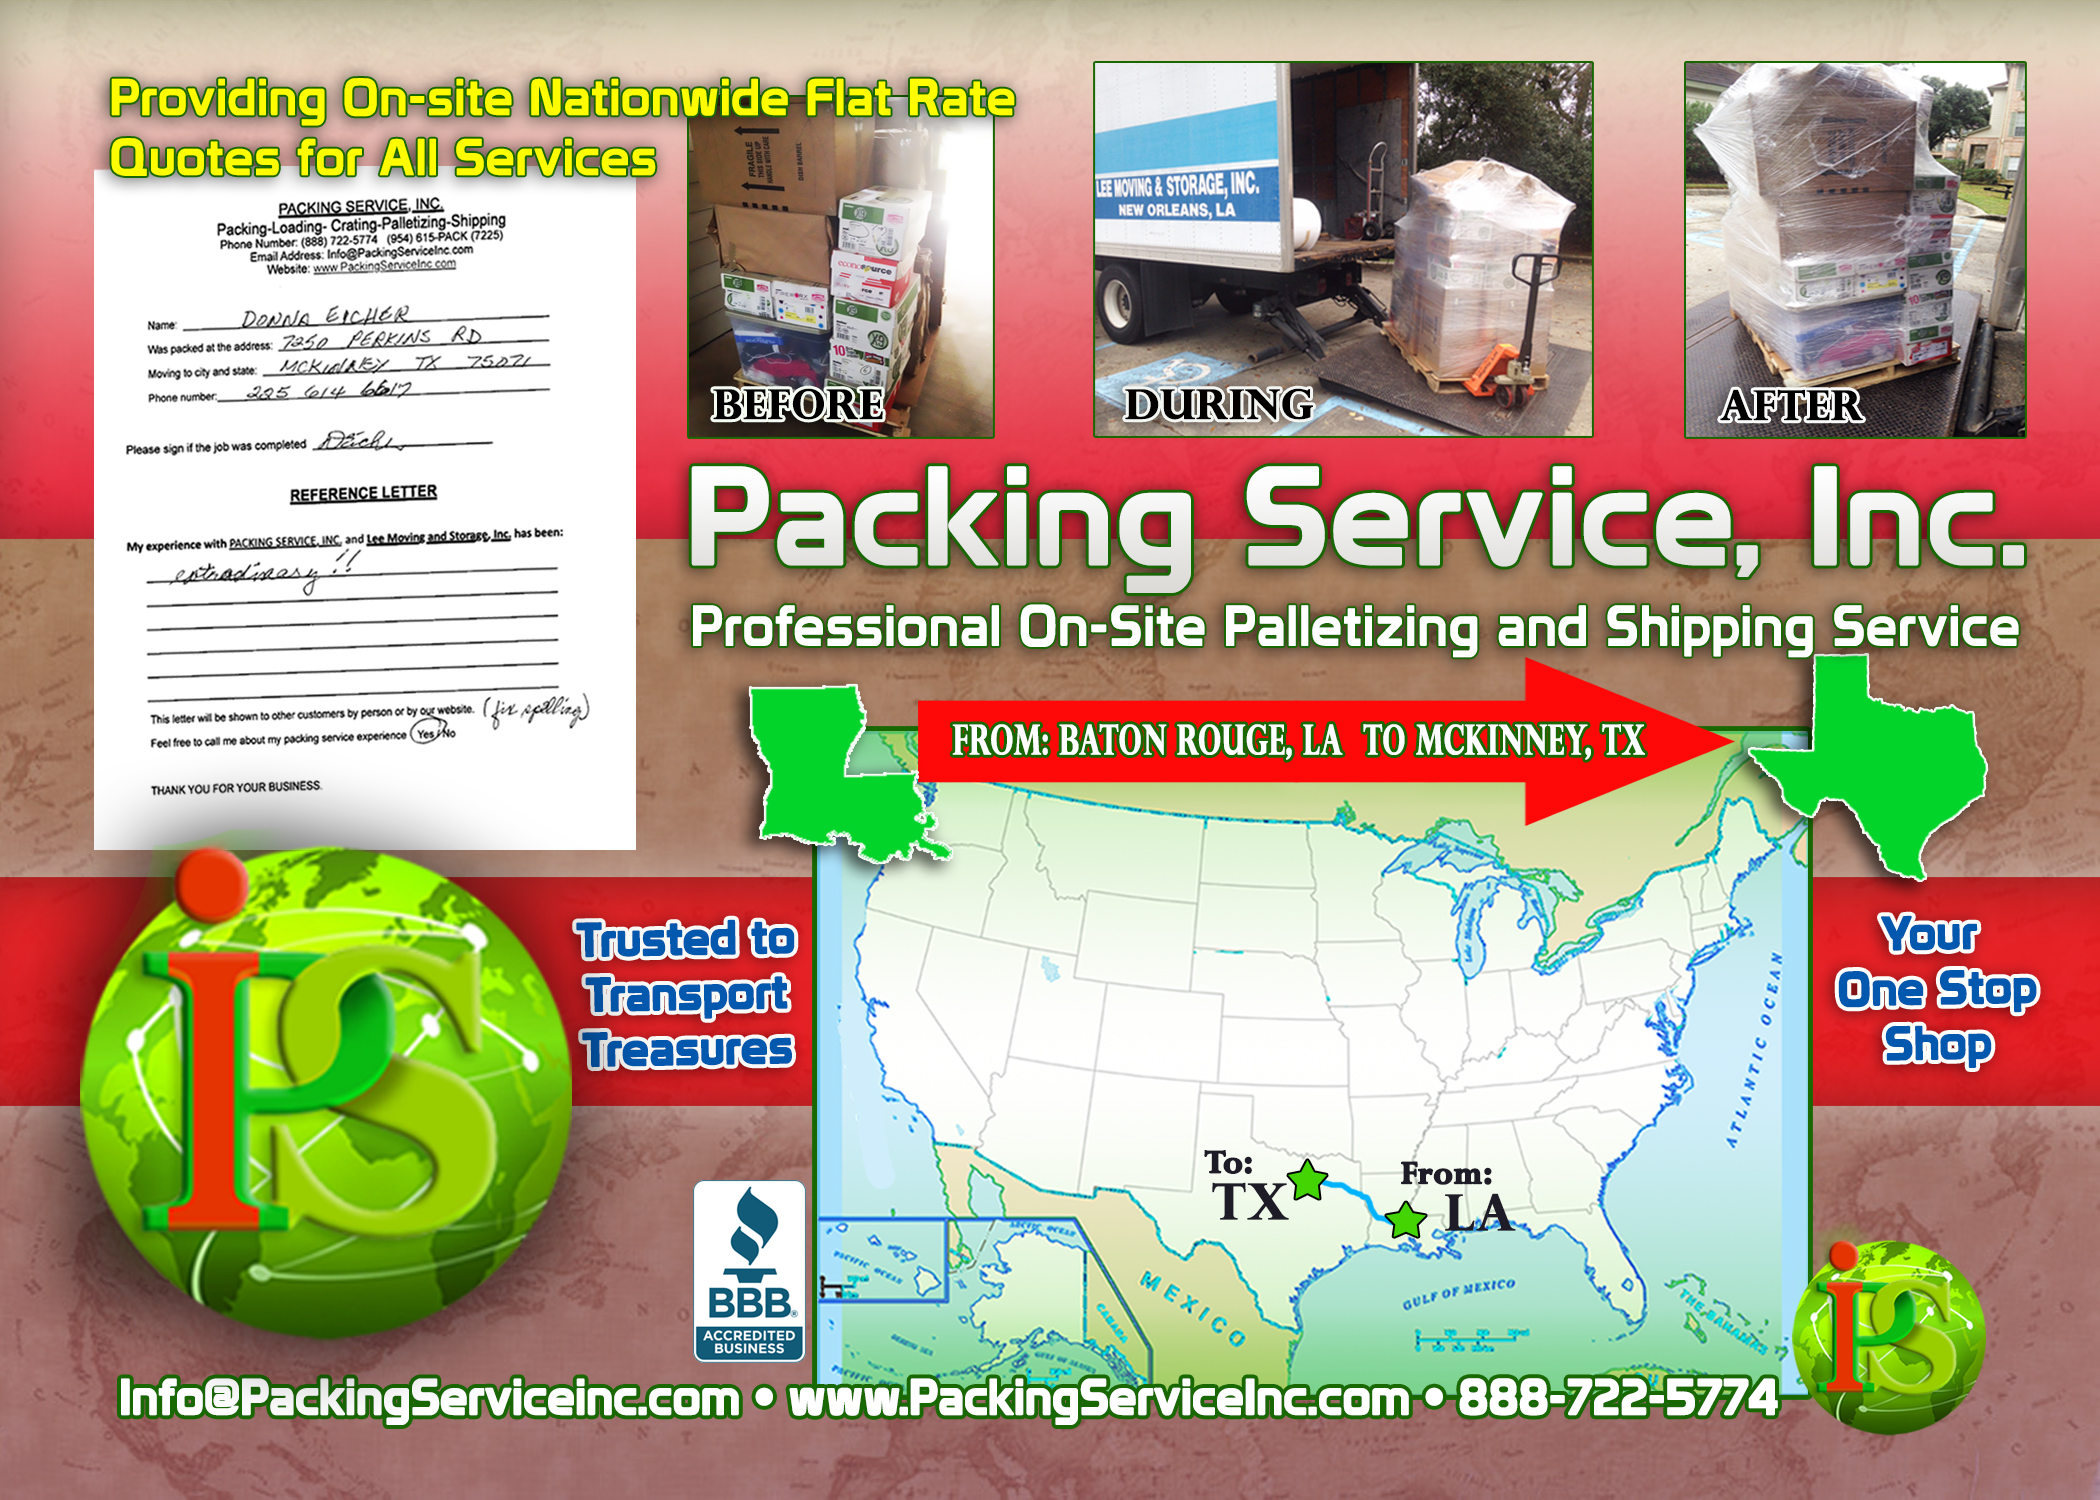 Palletizing boxes for domestic and international shipping is one of the many services we offer at Packing Service Inc.